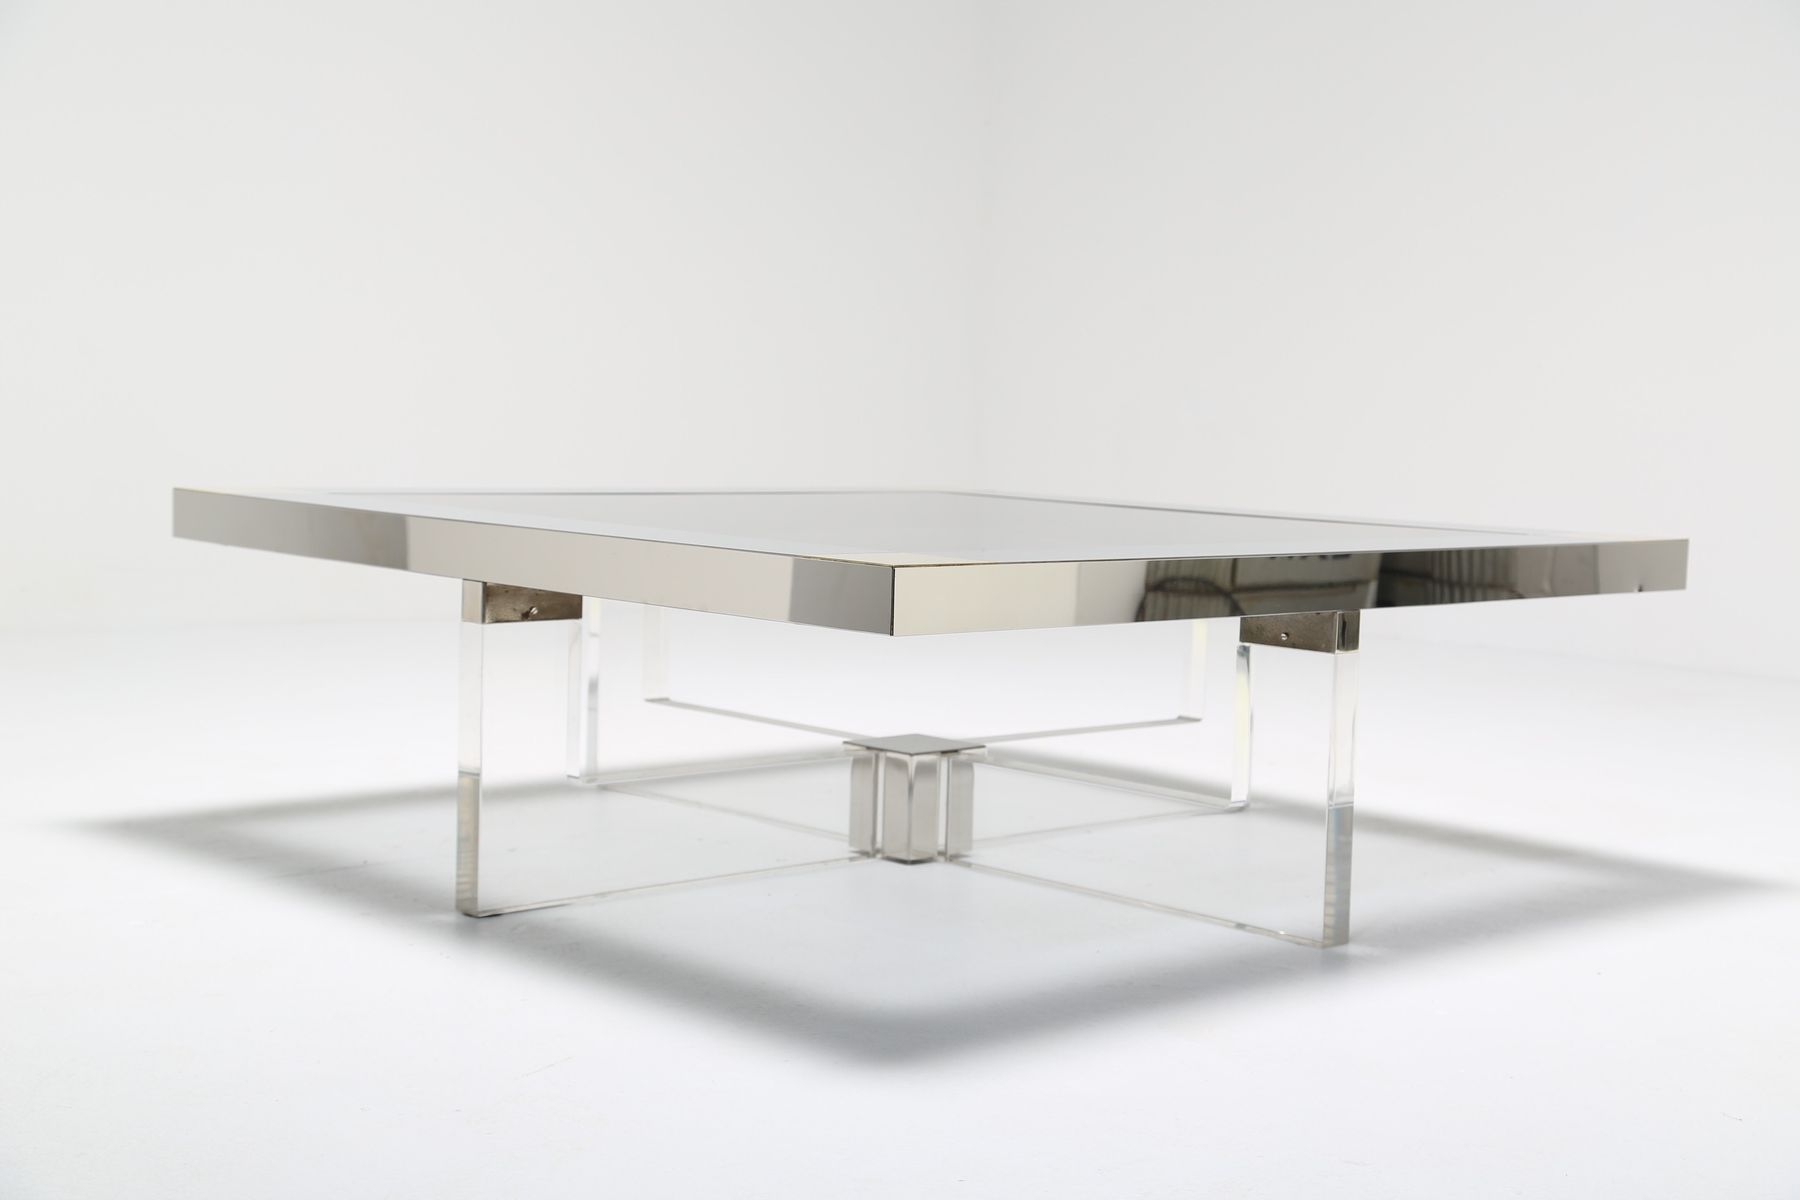 Italian Lucite Chrome and Brass Coffee Table 1970s for sale at